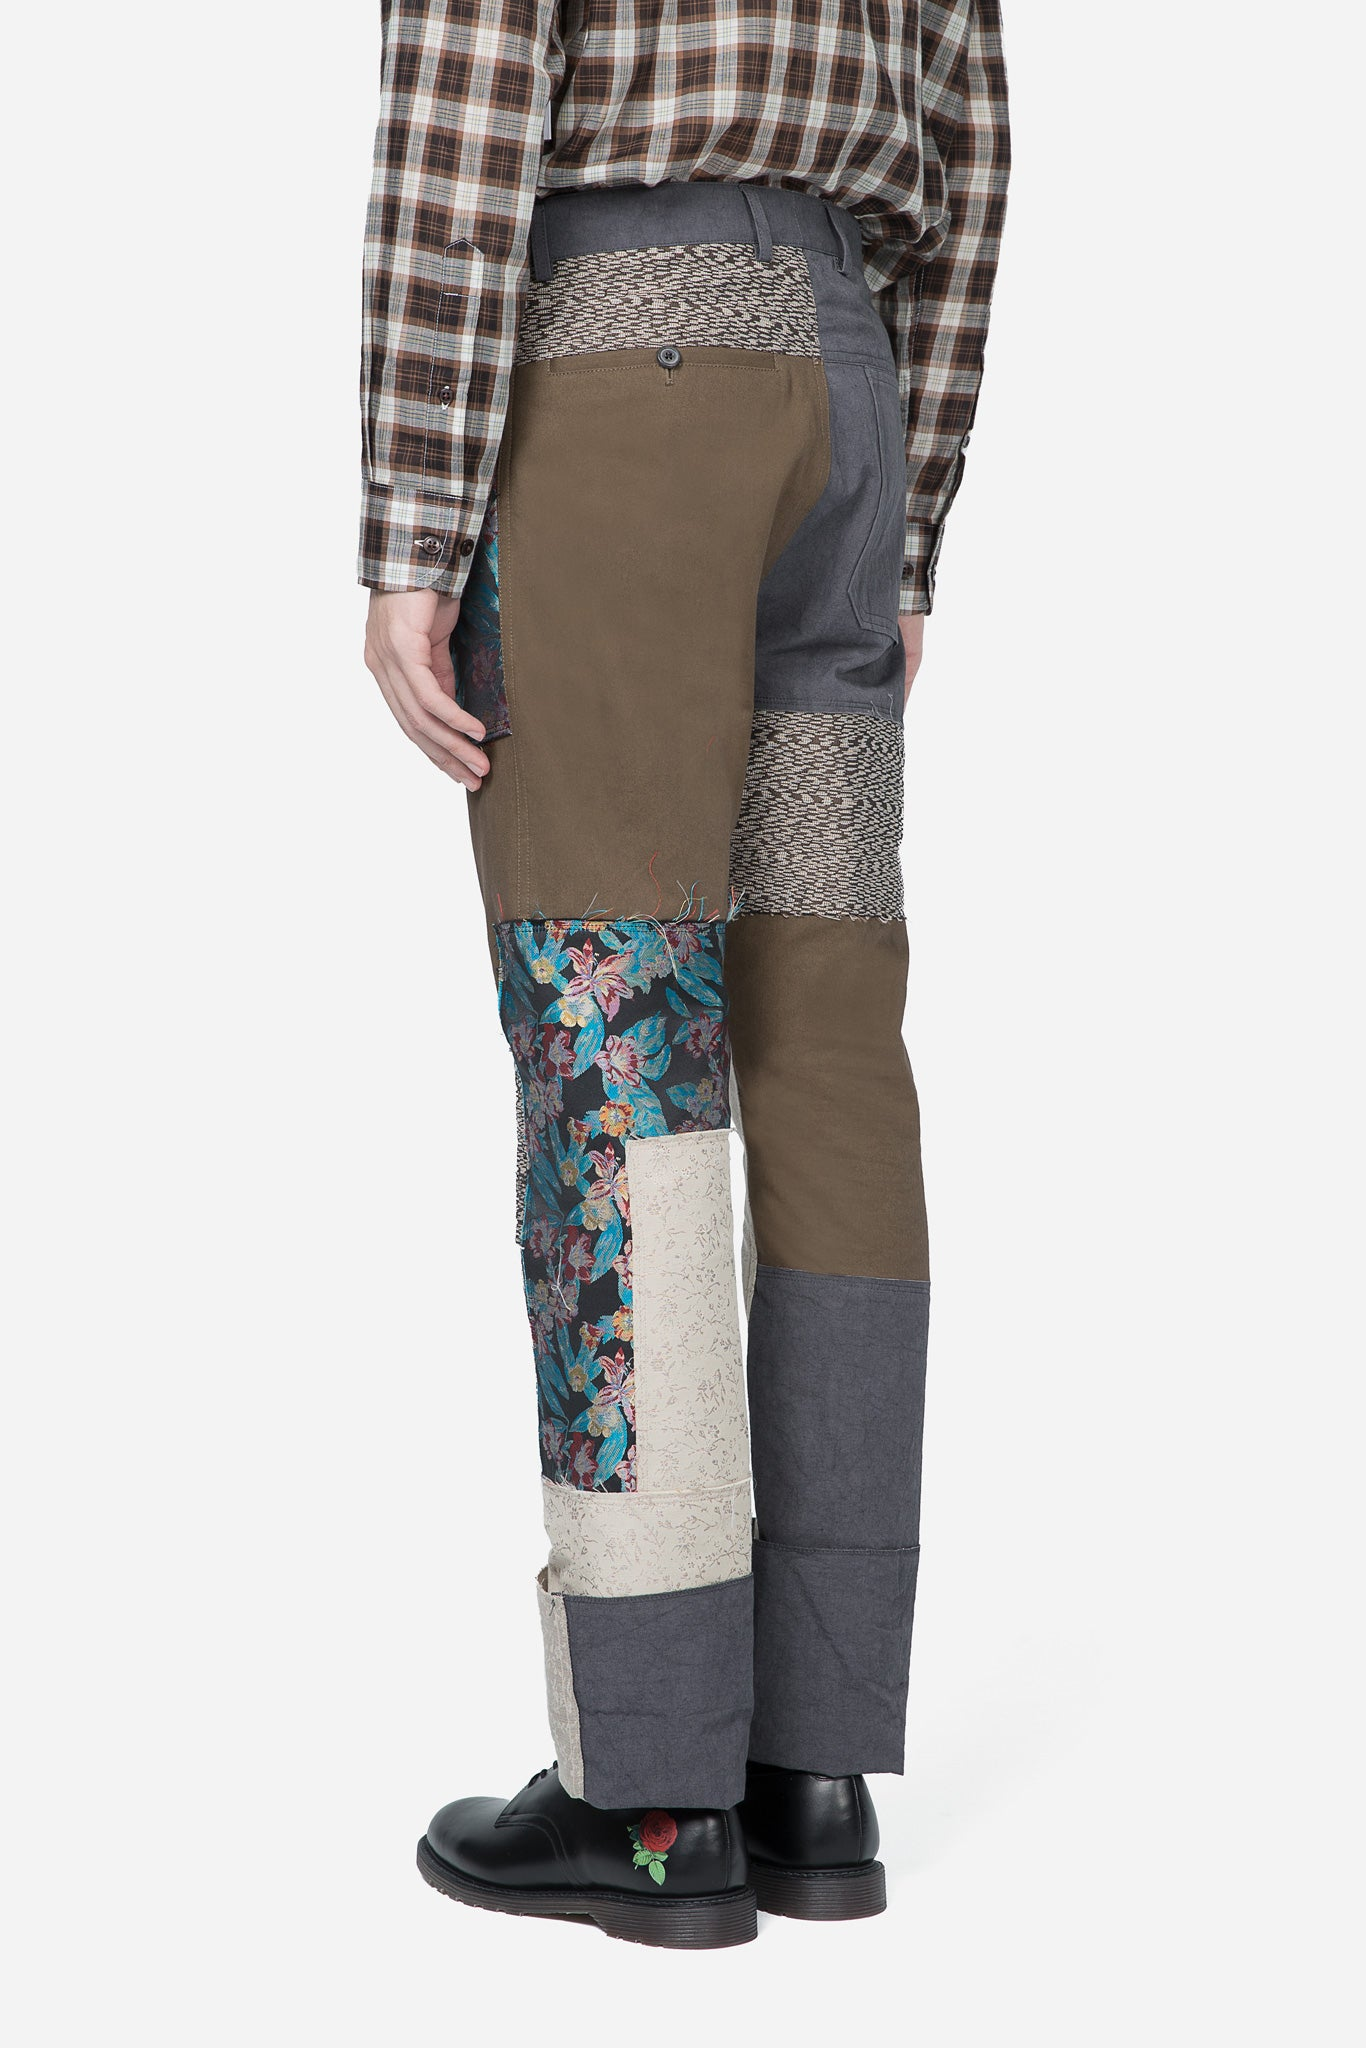 Fitted 5 Pockets Pants Patchwork